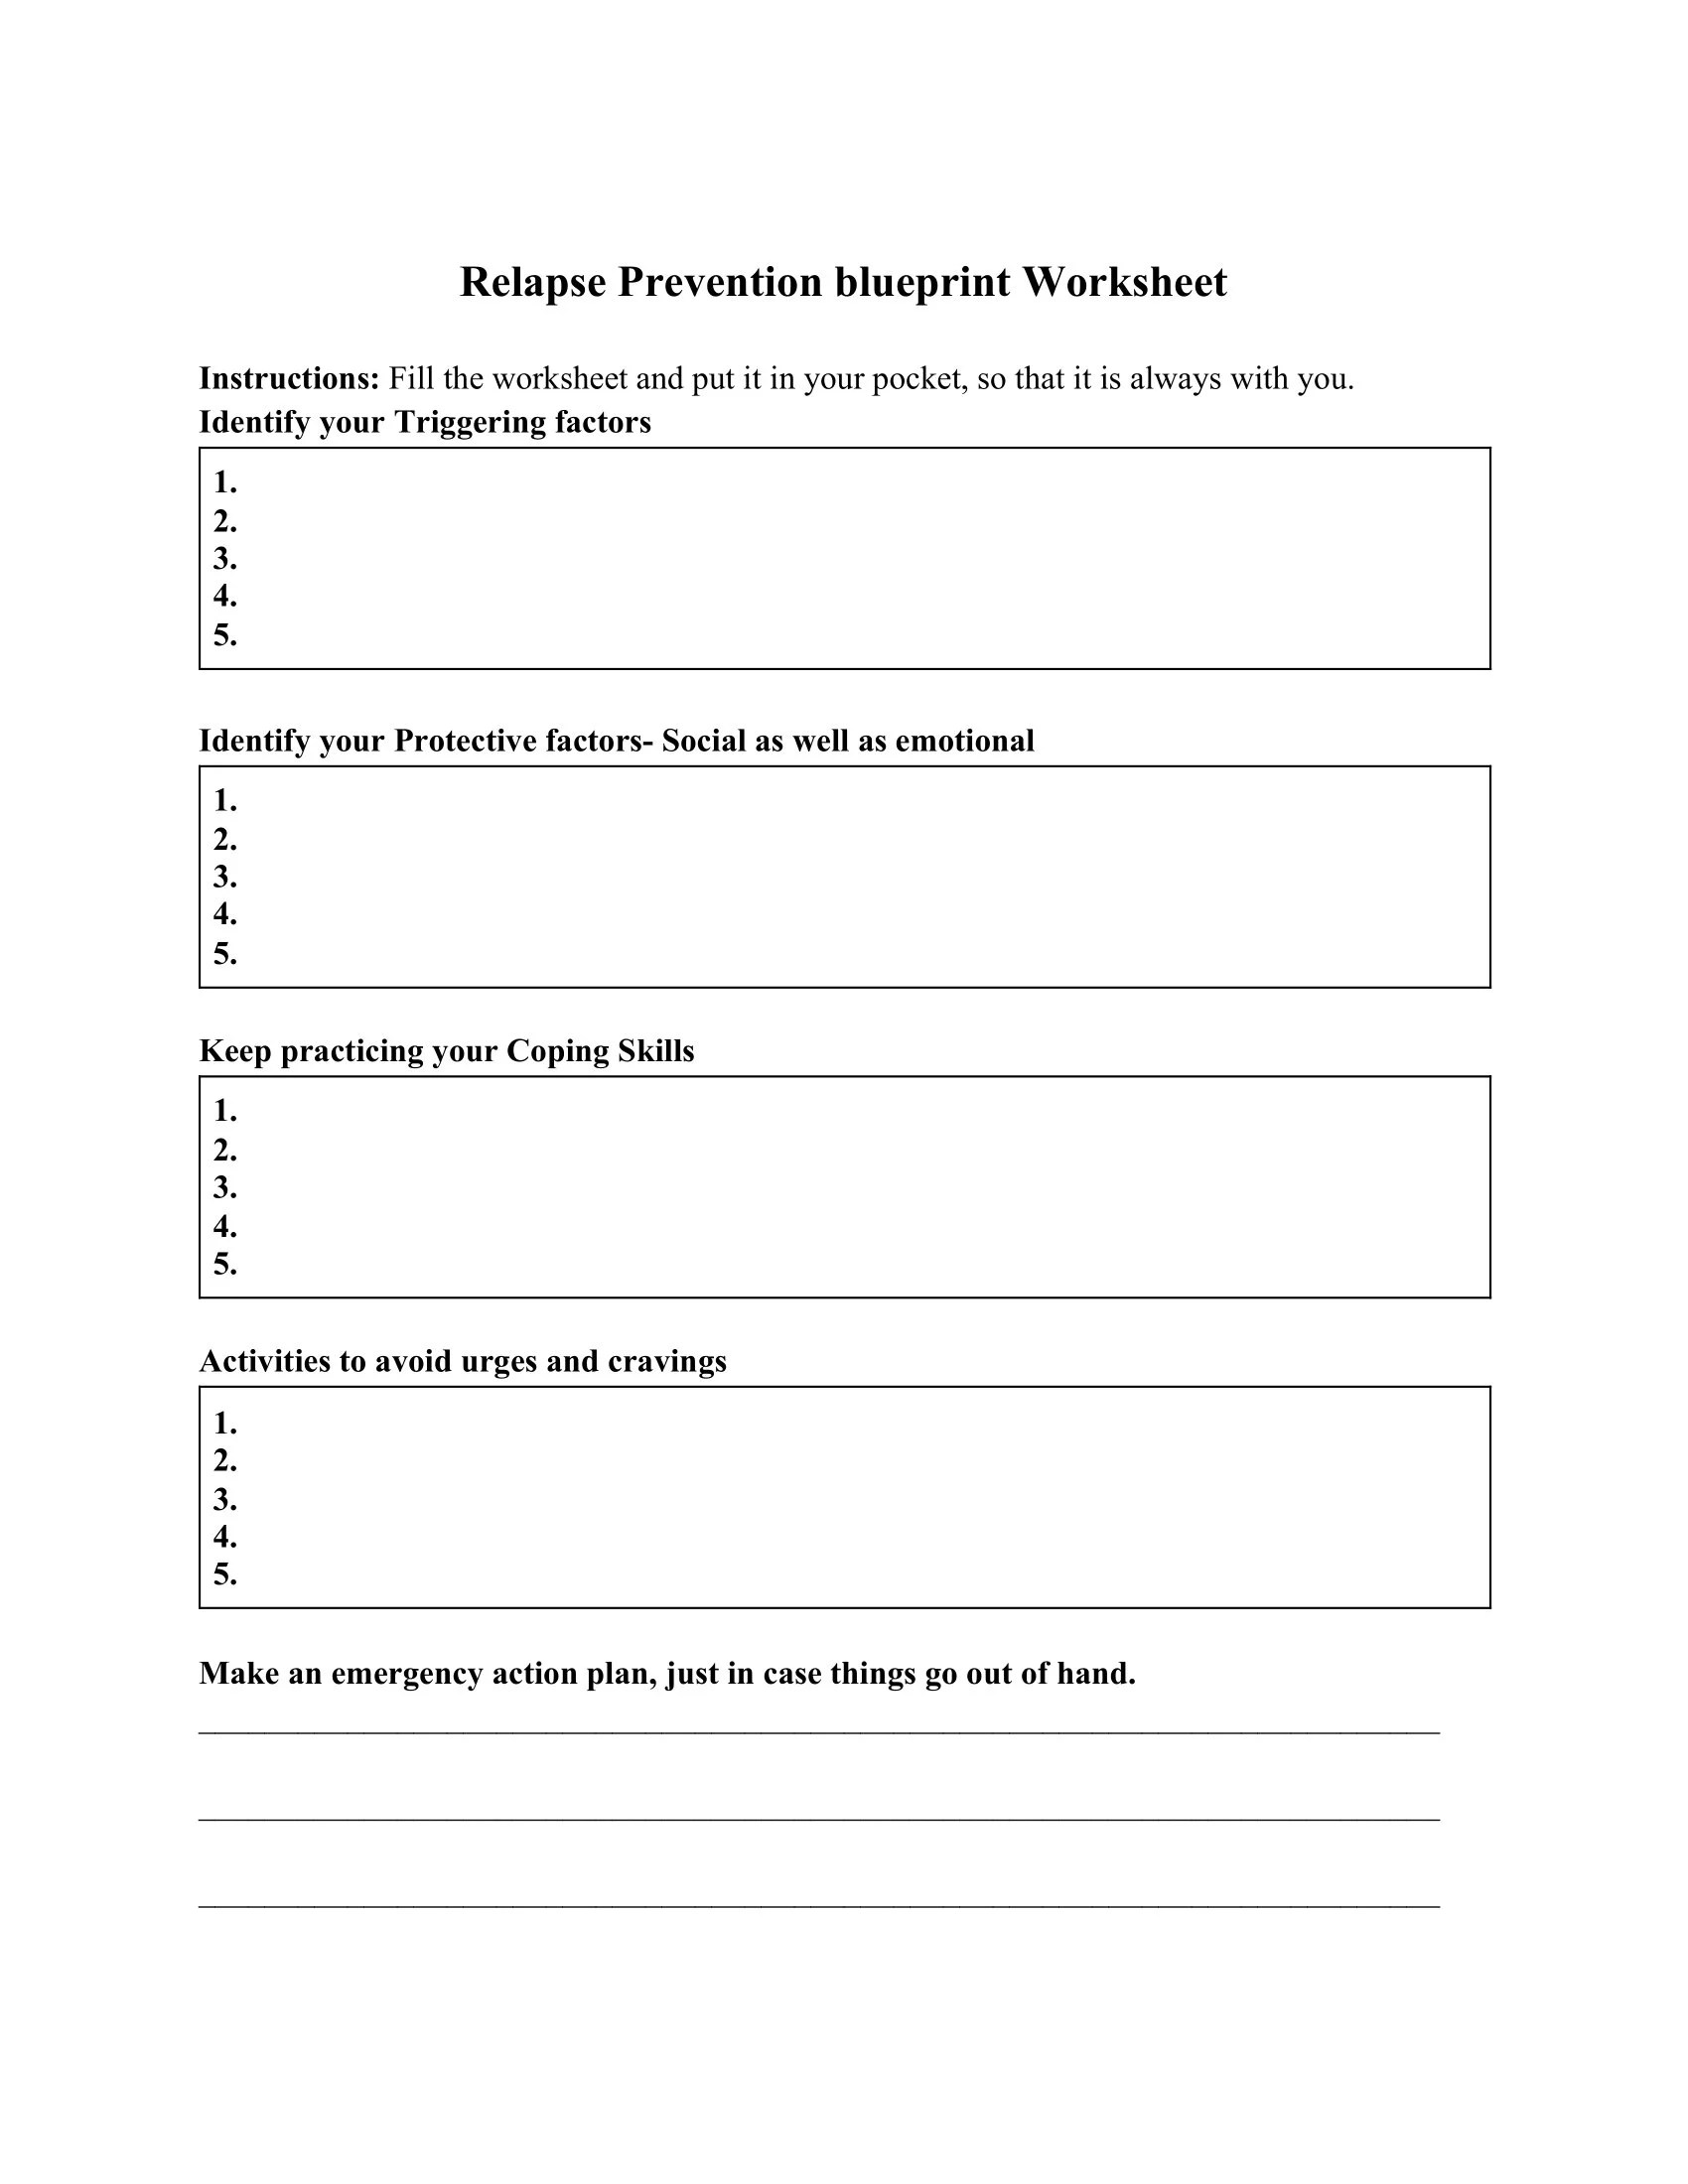 Relapse Prevention Blueprint Worksheet